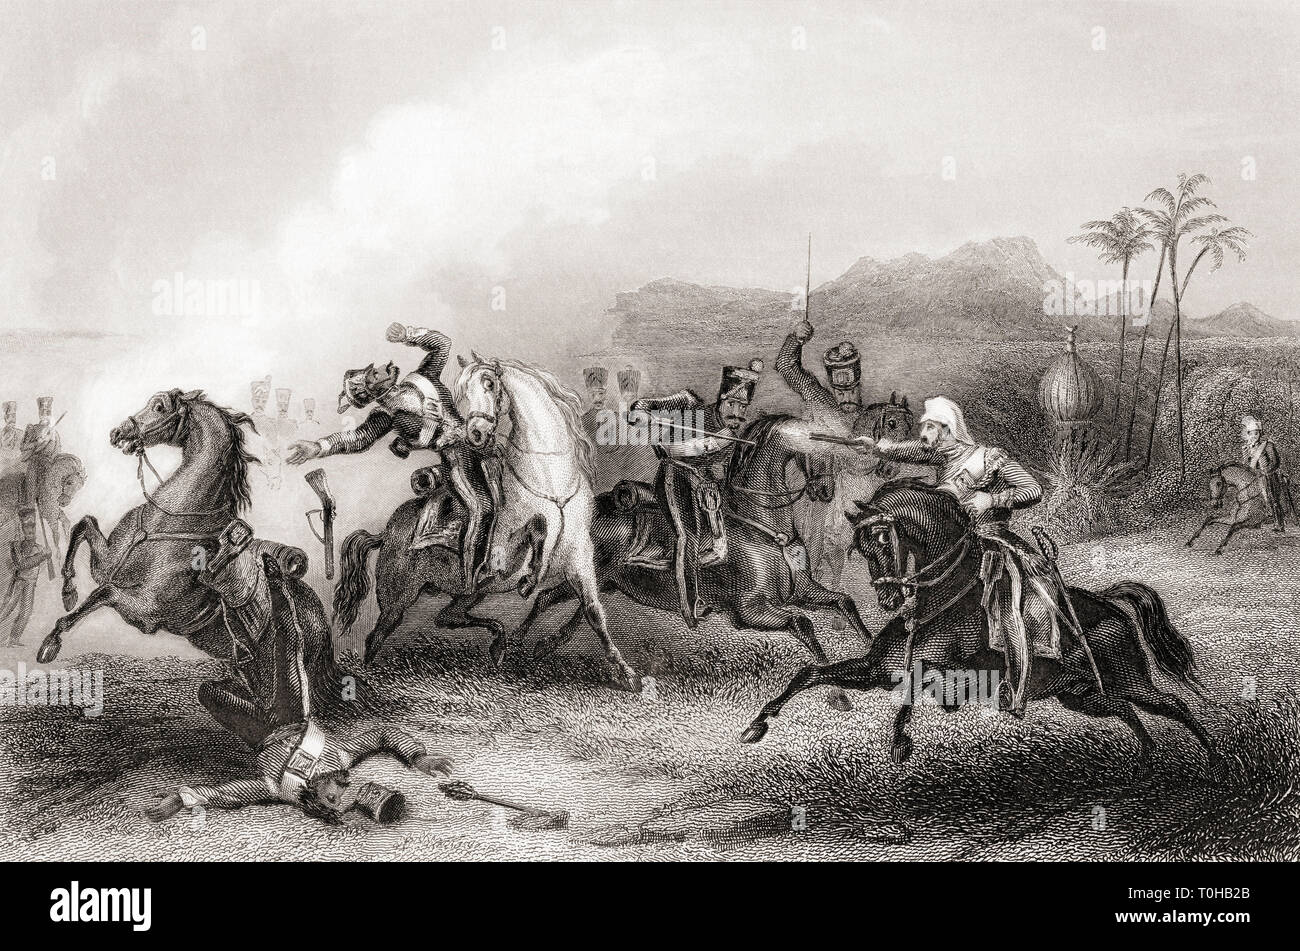 Encounter between Lieutenant Hills and body of Sepoy cavalry, India, Asia - Stock Image